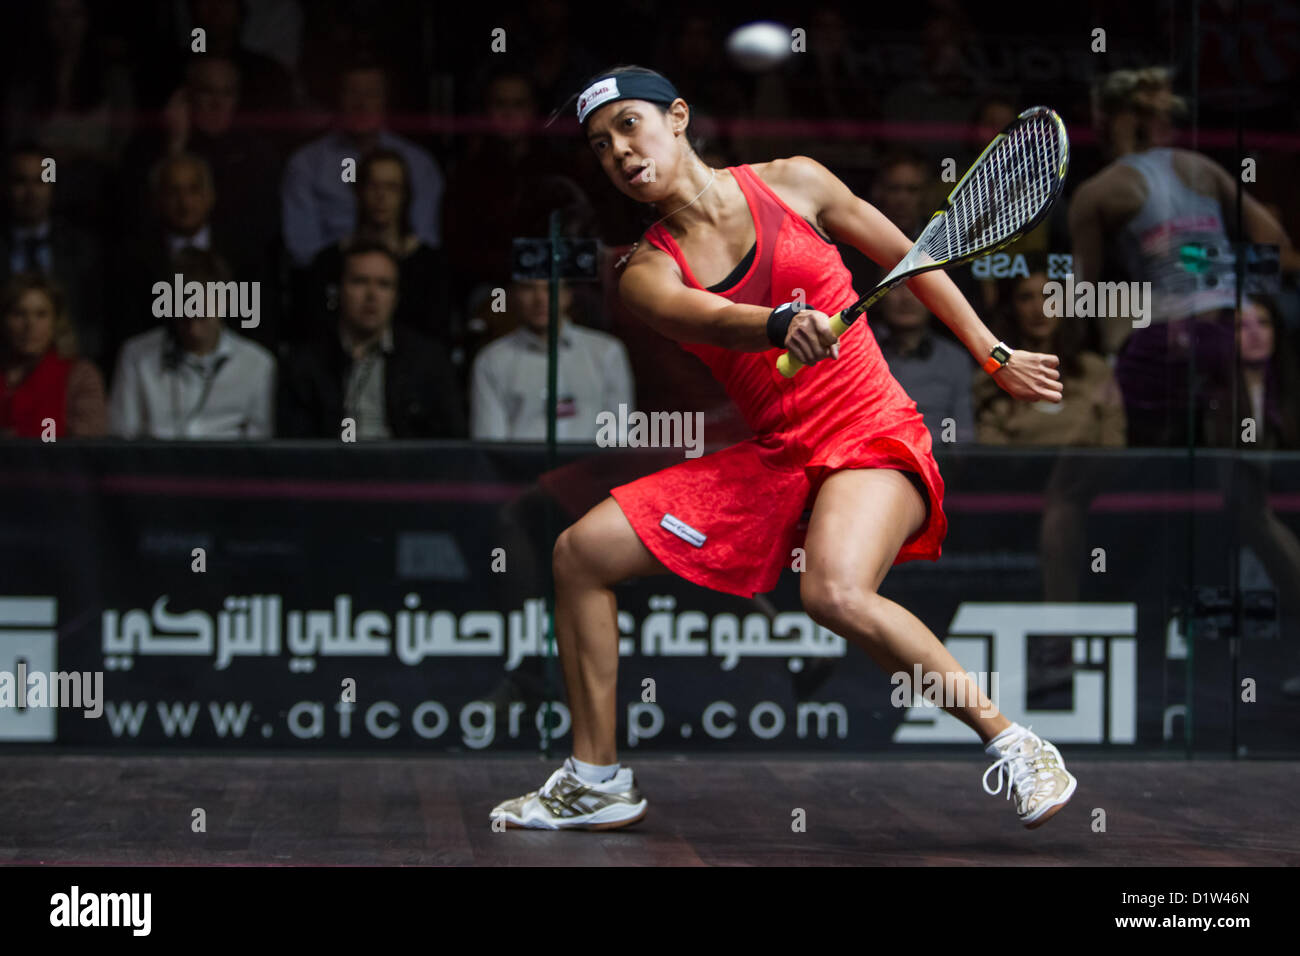 06.01.2013 London, England. World number 1 and reigning World Series champion Nicol David (Malaysia) in action during - Stock Image